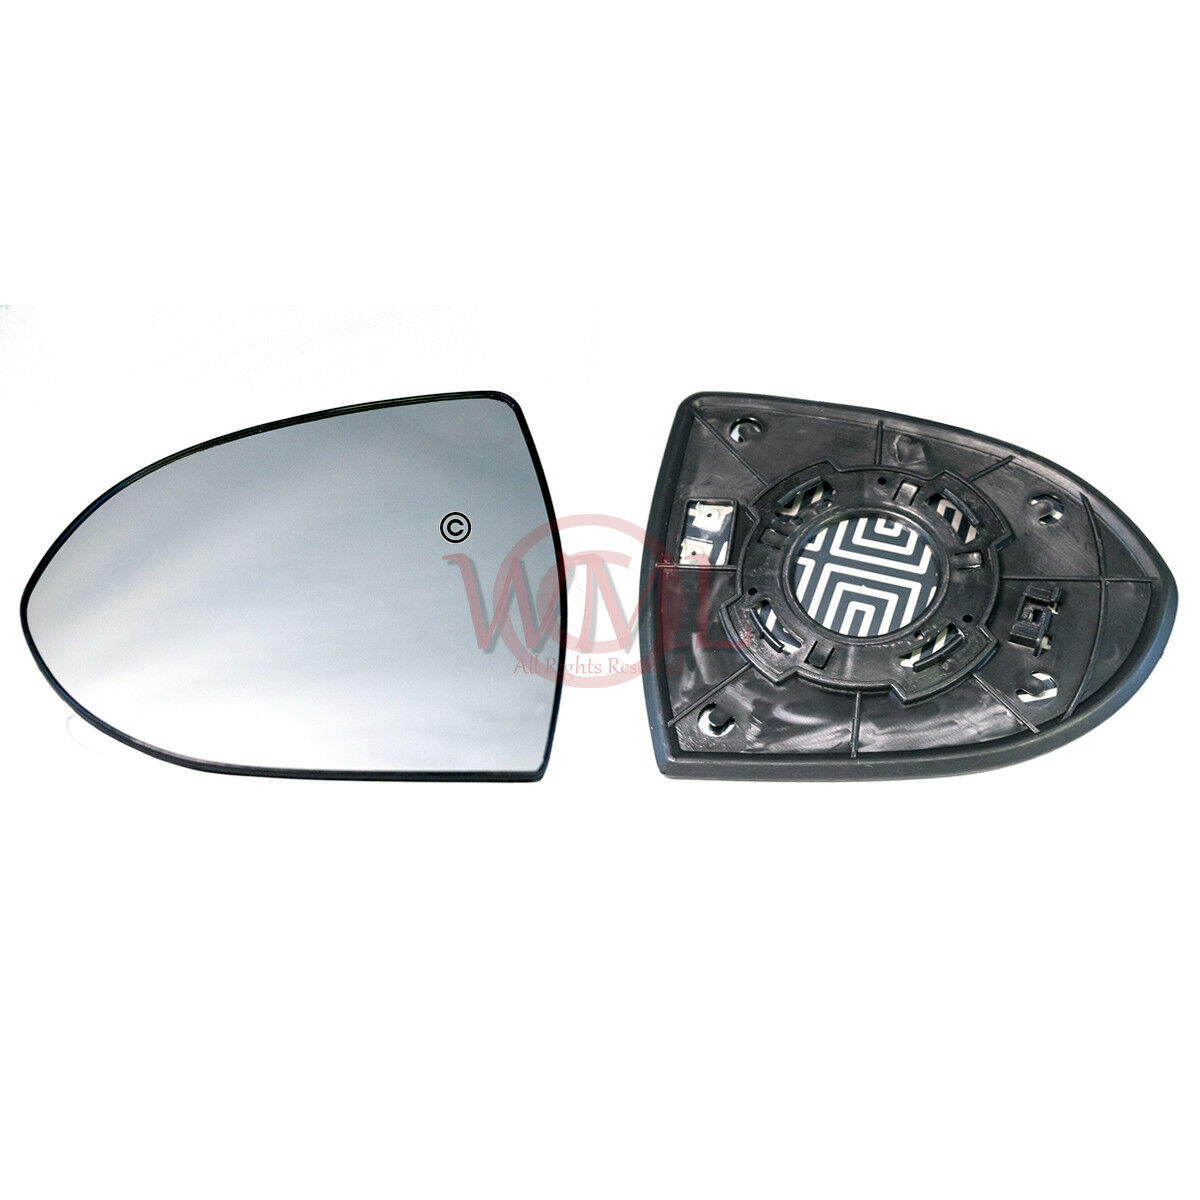 Kia Sportage Mk3 2010-2015 Left Passenger Side Convex wing mirror glass 557LS